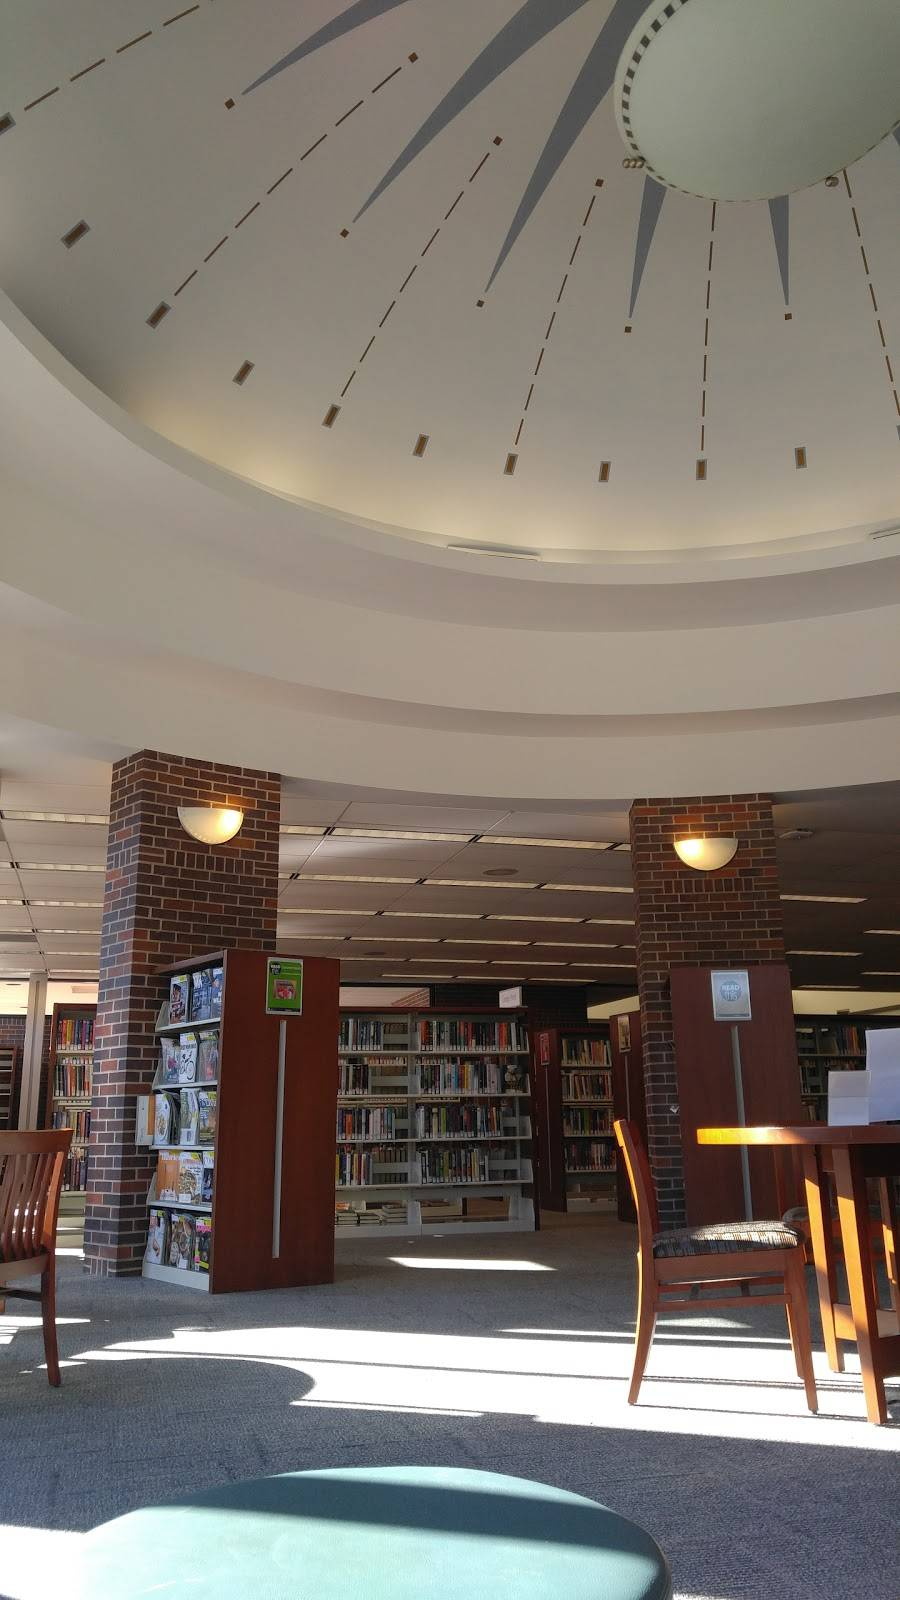 Washburn Library - library  | Photo 6 of 10 | Address: 5244 Lyndale Ave S, Minneapolis, MN 55419, USA | Phone: (612) 543-8375